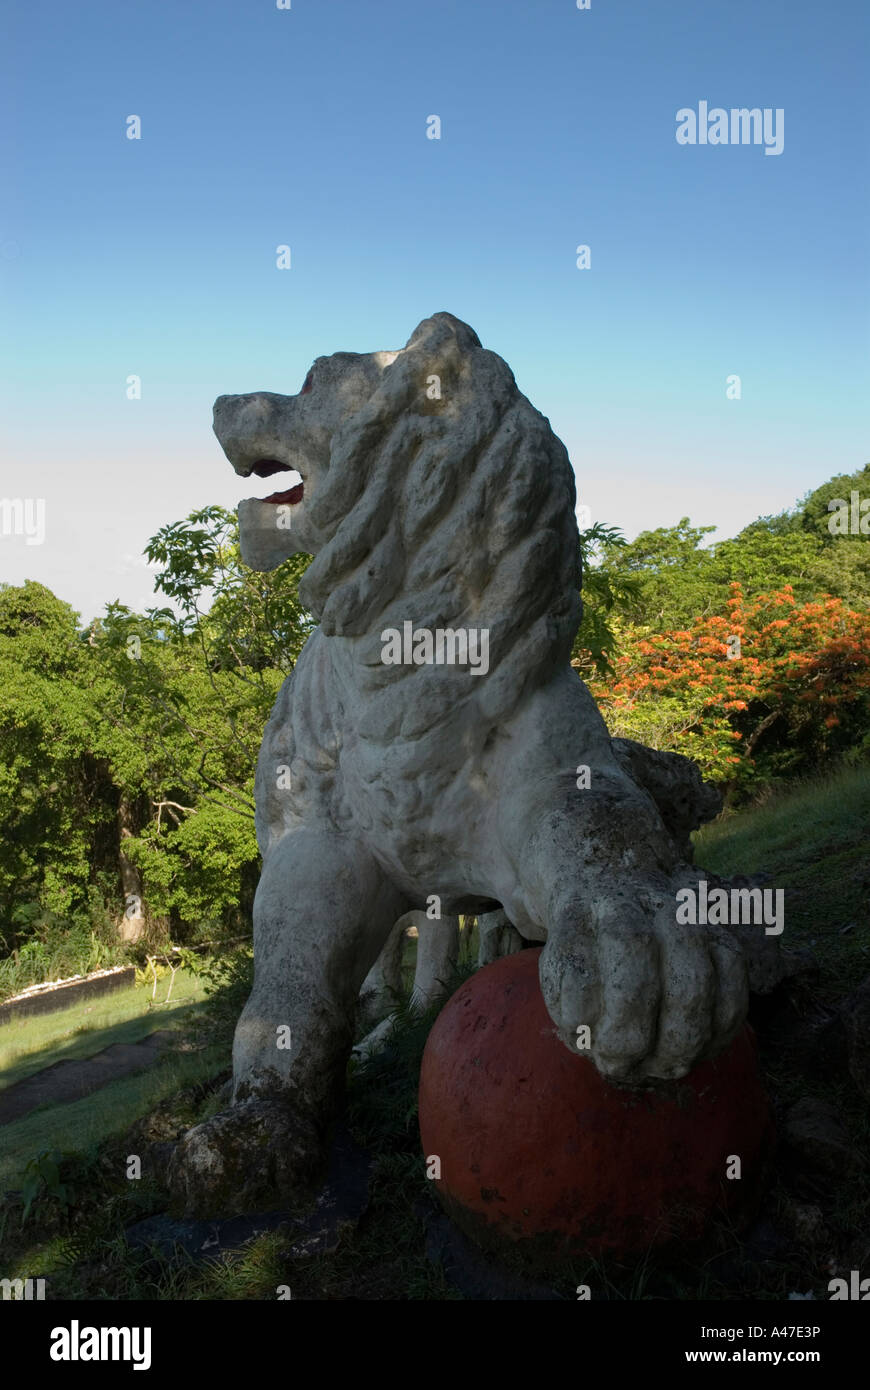 Lion Stone Statue Underexposed, Gun Hill, St George, Barbados, 8/06 - Stock Image